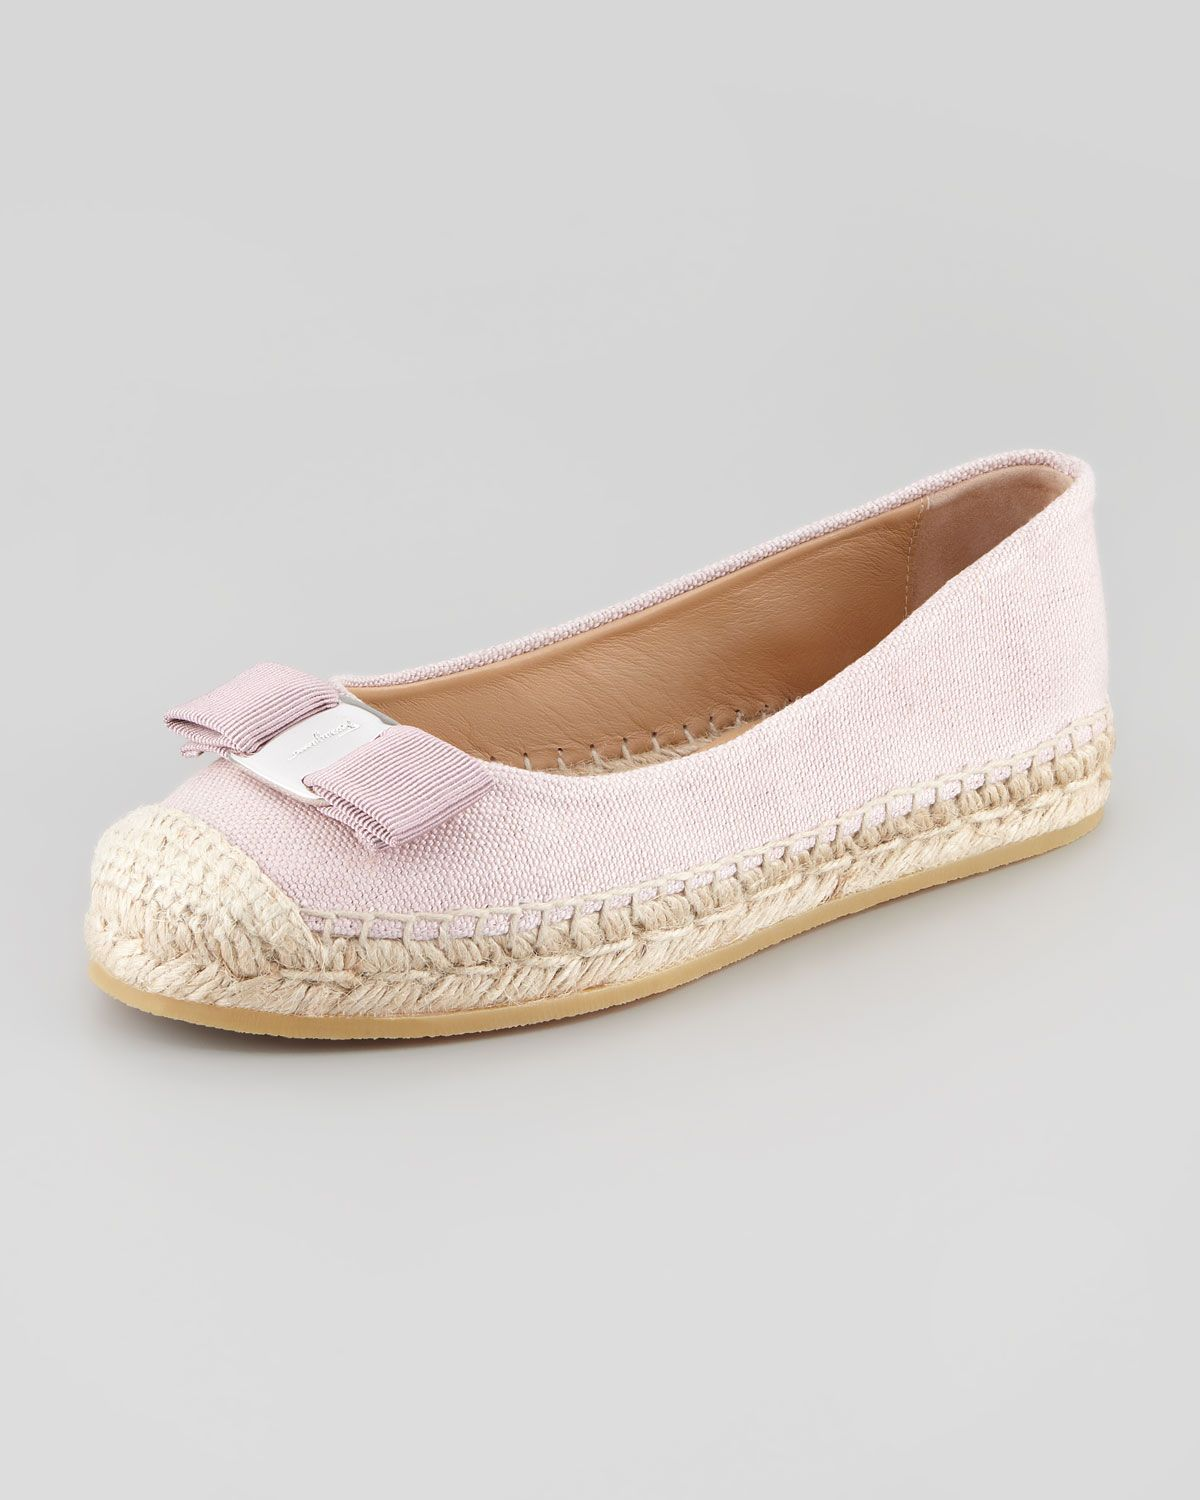 BLAKE - Espadrille - orange 1zAjPk